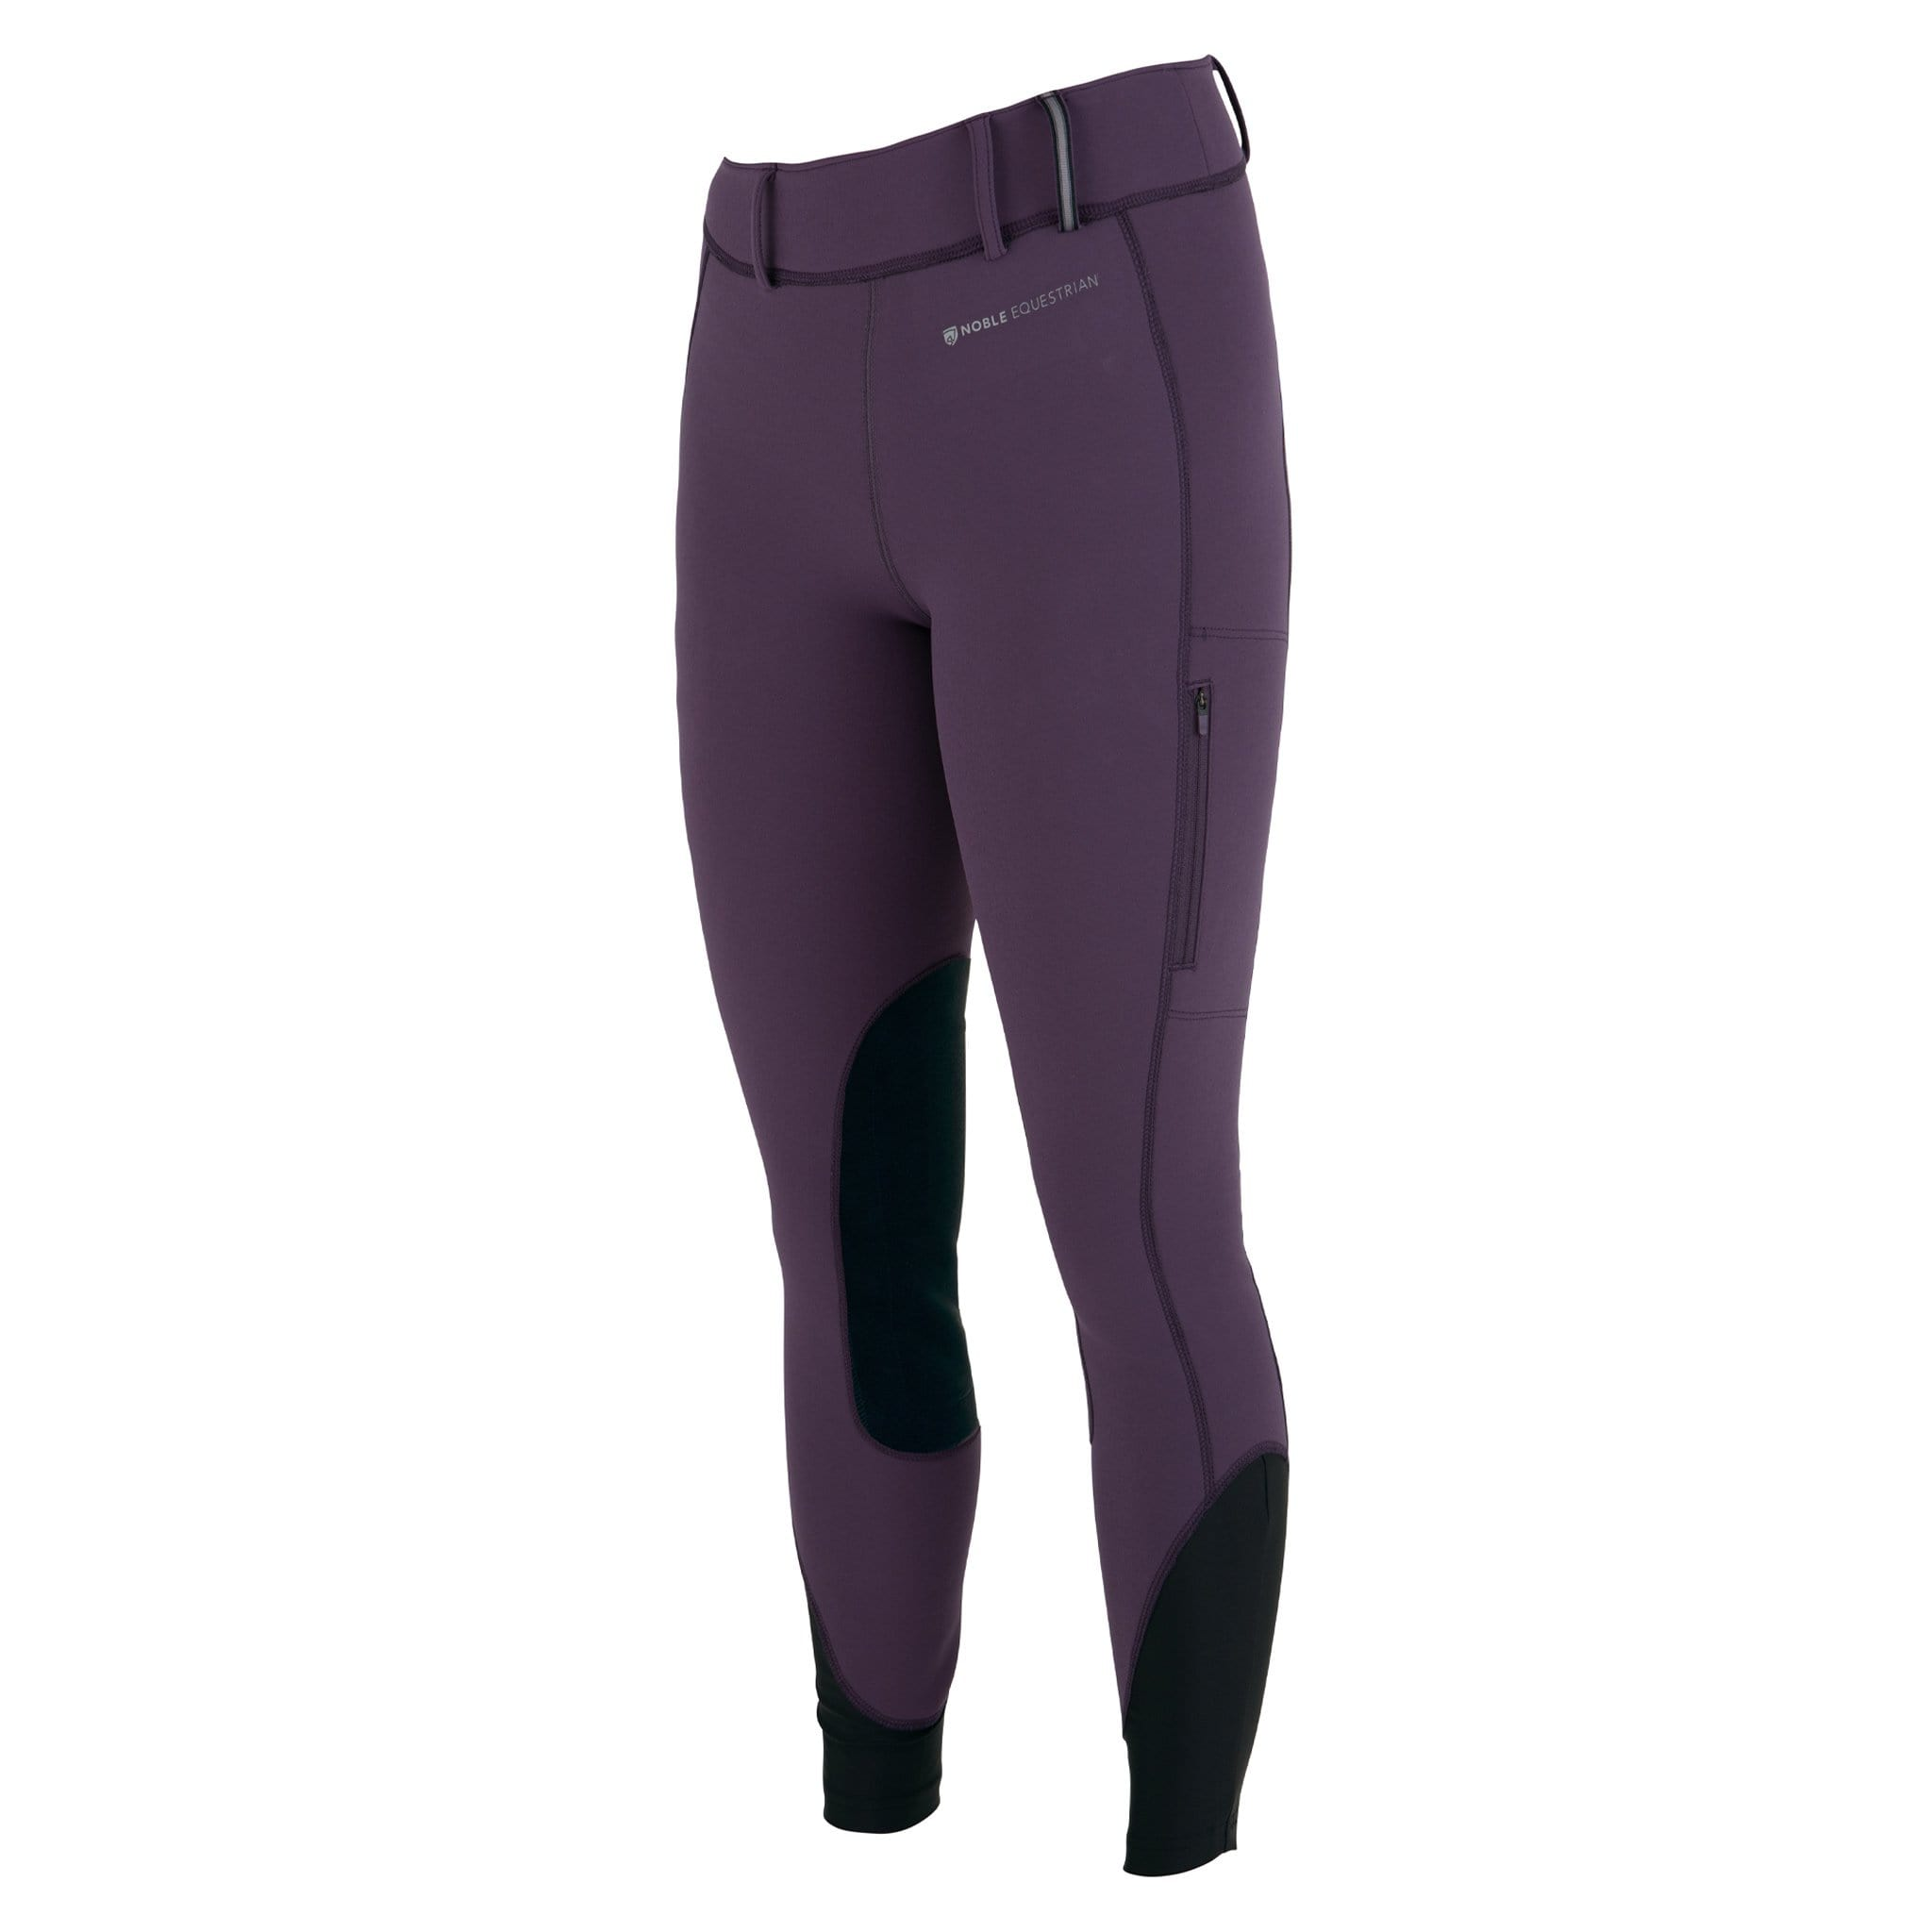 Noble Equestrian Balance Softshell Silicone Knee Patch Riding Tights Grape Royale Front 24027